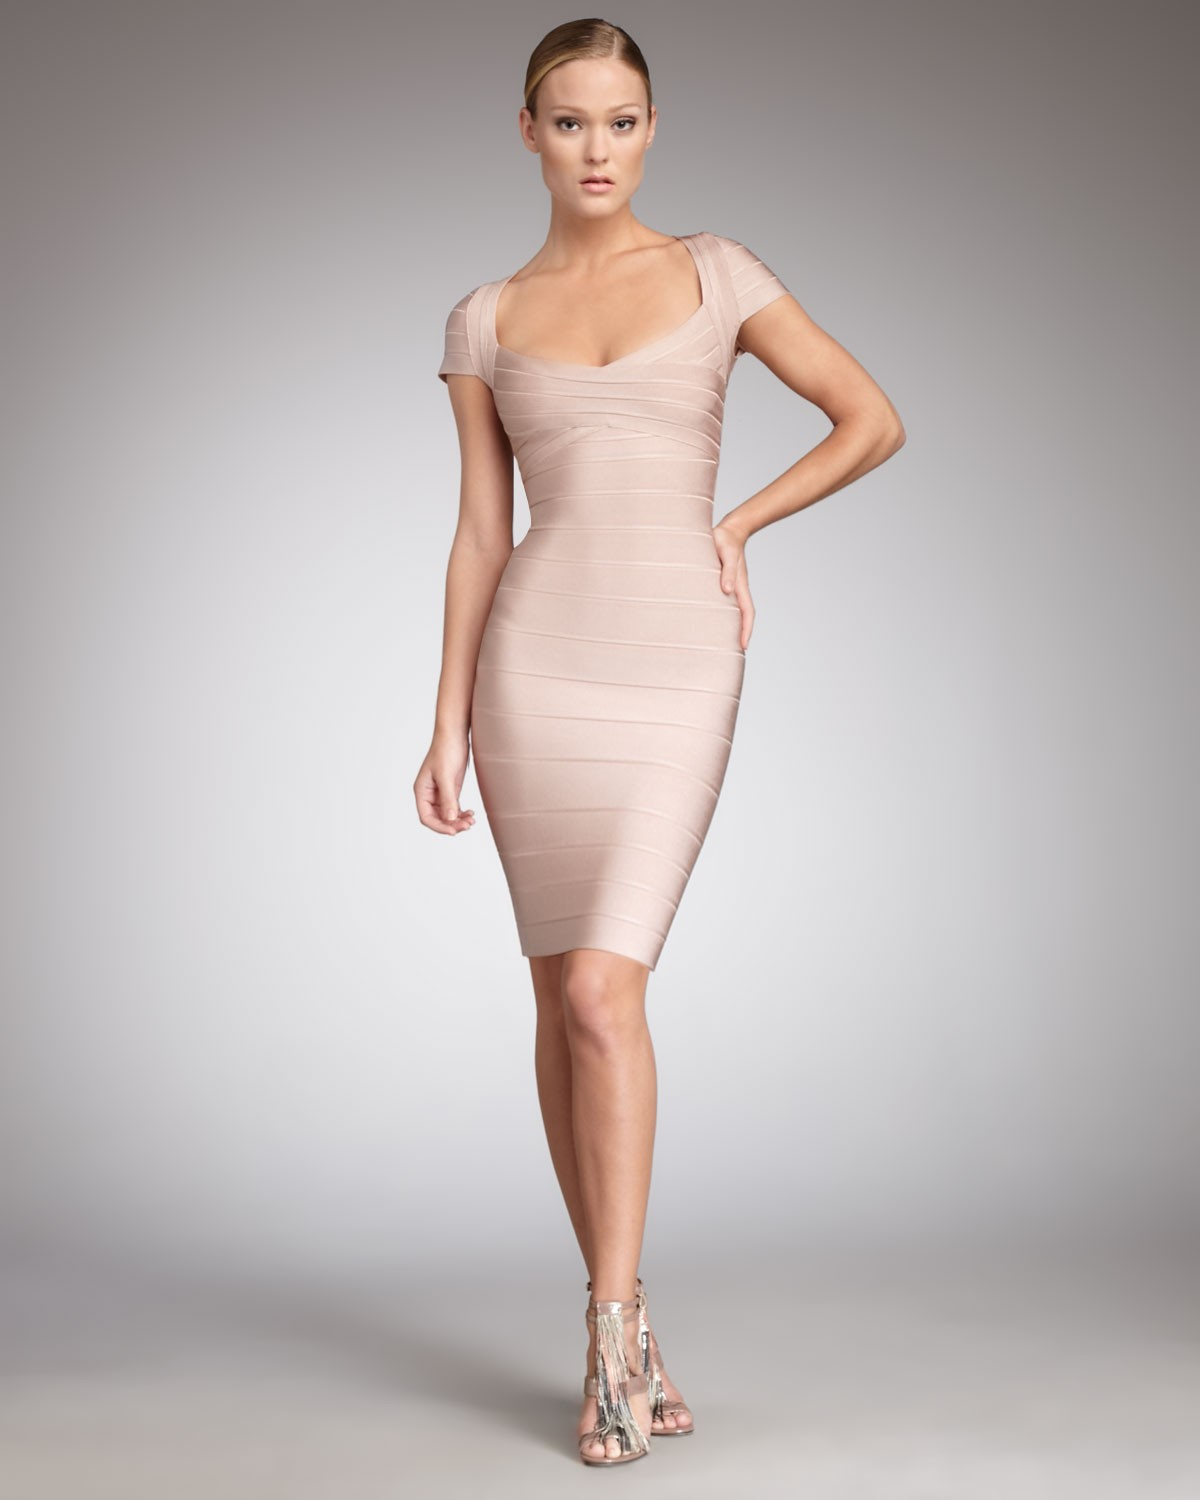 664f2938a54 Herve Leger New Fashion Cap Sleeve Bandage Dress  Herve Leger New ...